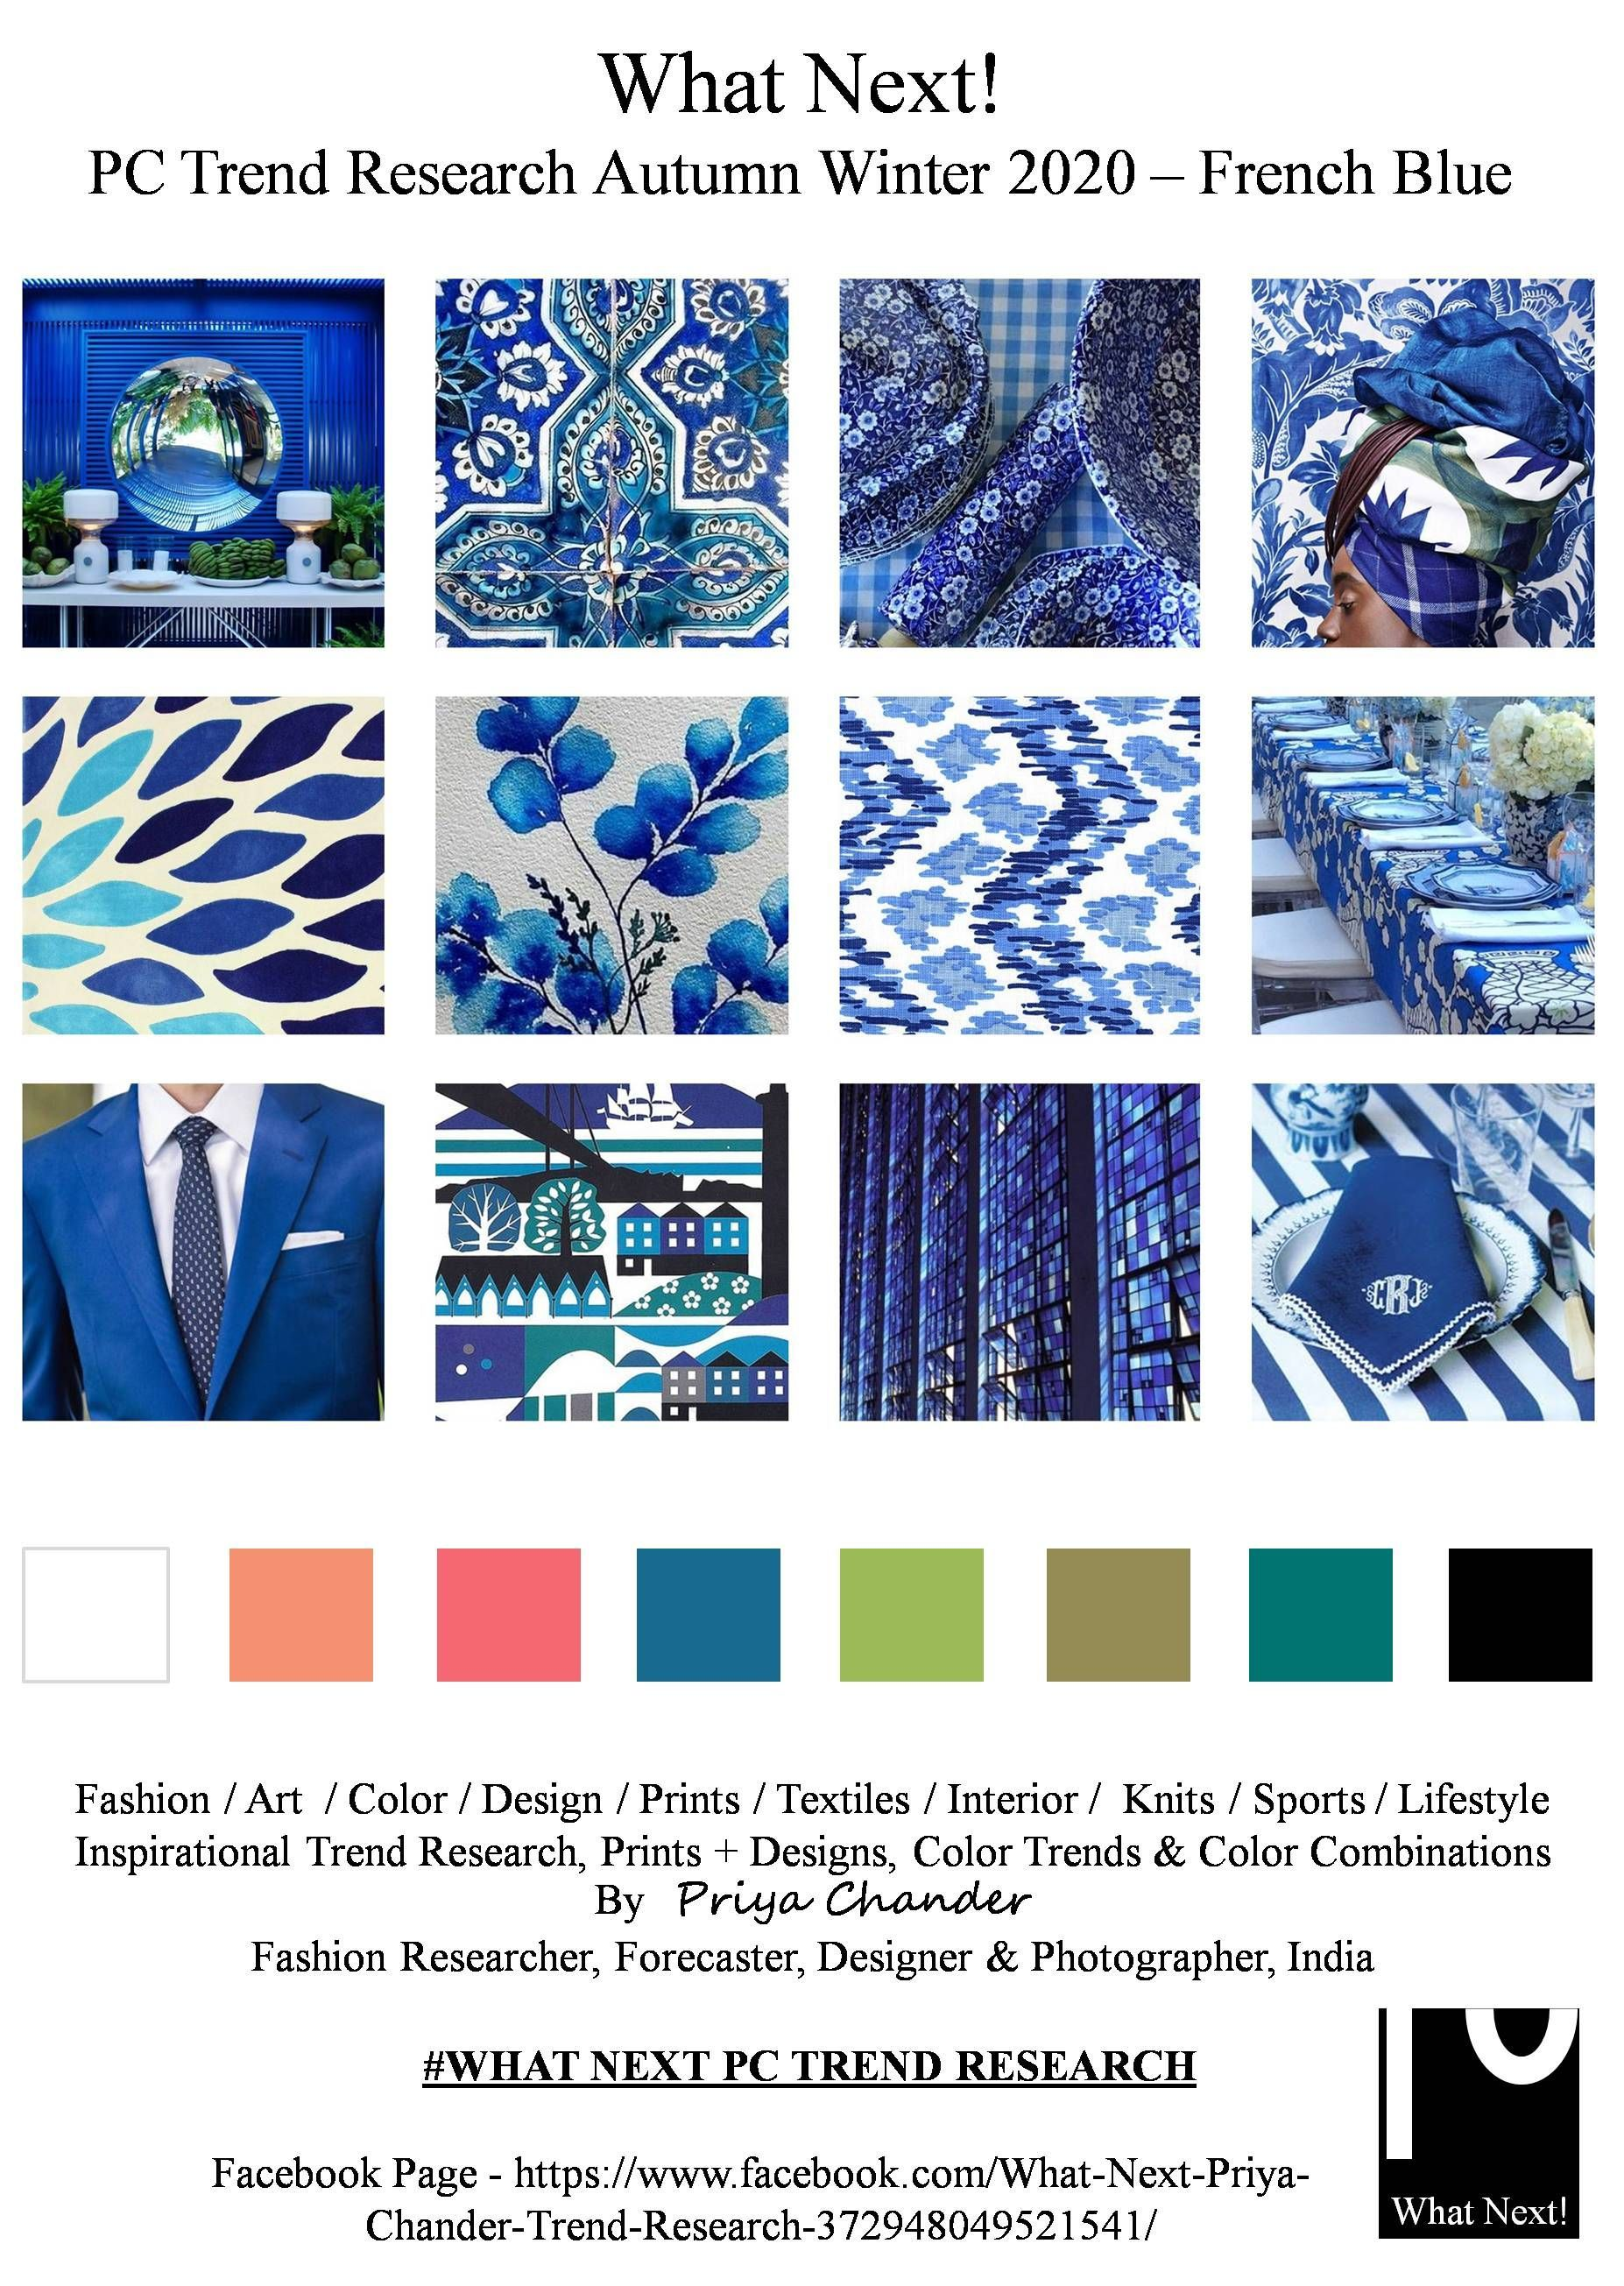 Frenchblue Frenchbluecolor Blue Aw2020 Fashioninspiration Color Trends Fashion Fashion Trend Forecast Color Trends